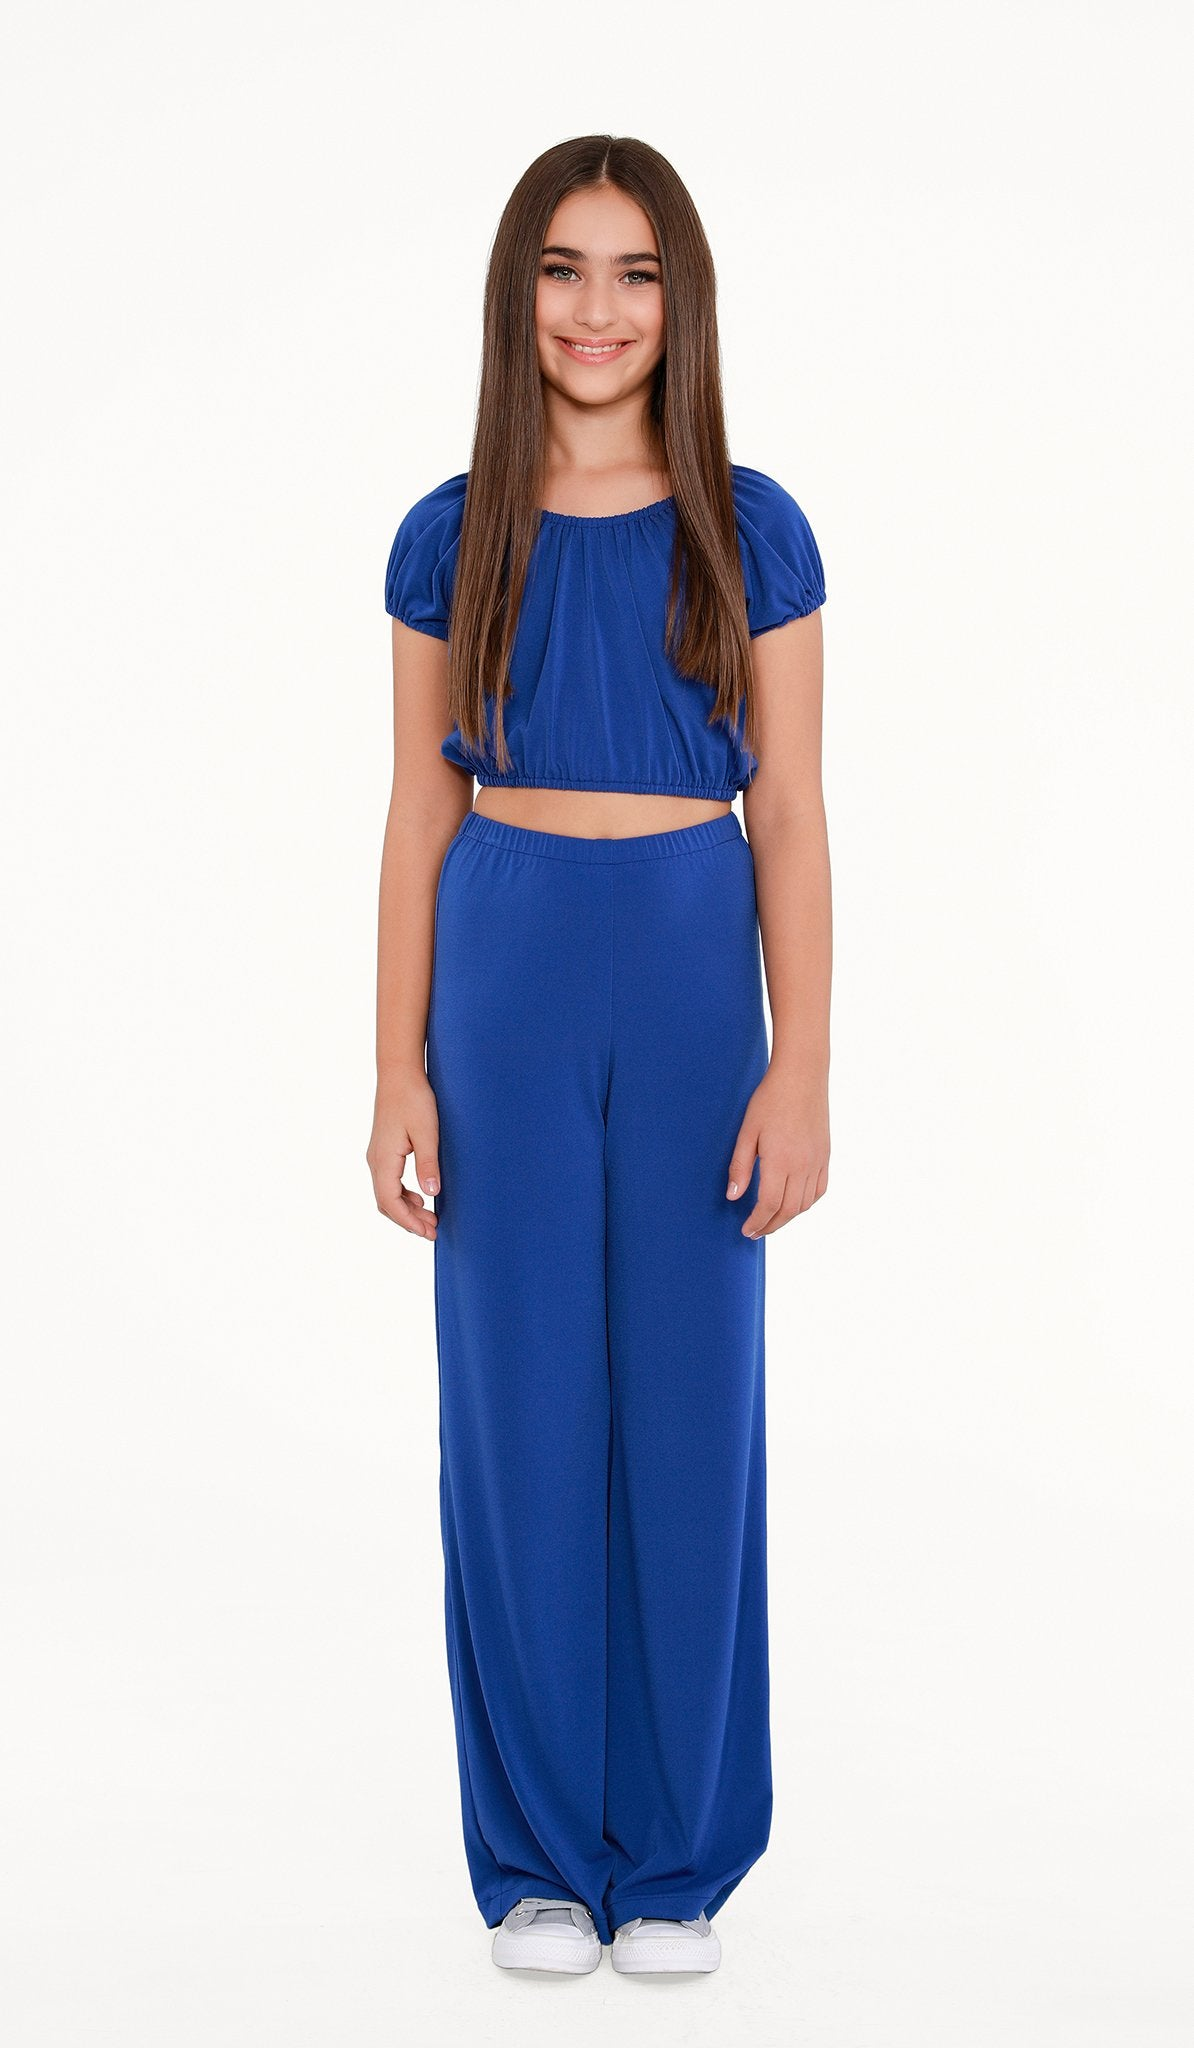 The Sally Miller Carrie Pant Set | Azure stretch knit peasant top and wide leg cropped pant set | | Event & Party Dresses for Tween Girls & Juniors | Weddings Dresses, Bat Mitzvah Dresses, Sweet Sixteen Dresses, Graduation Dresses, Birthday Party Dresses, Bar Mitzvah Dresses, Cotillion Dresses